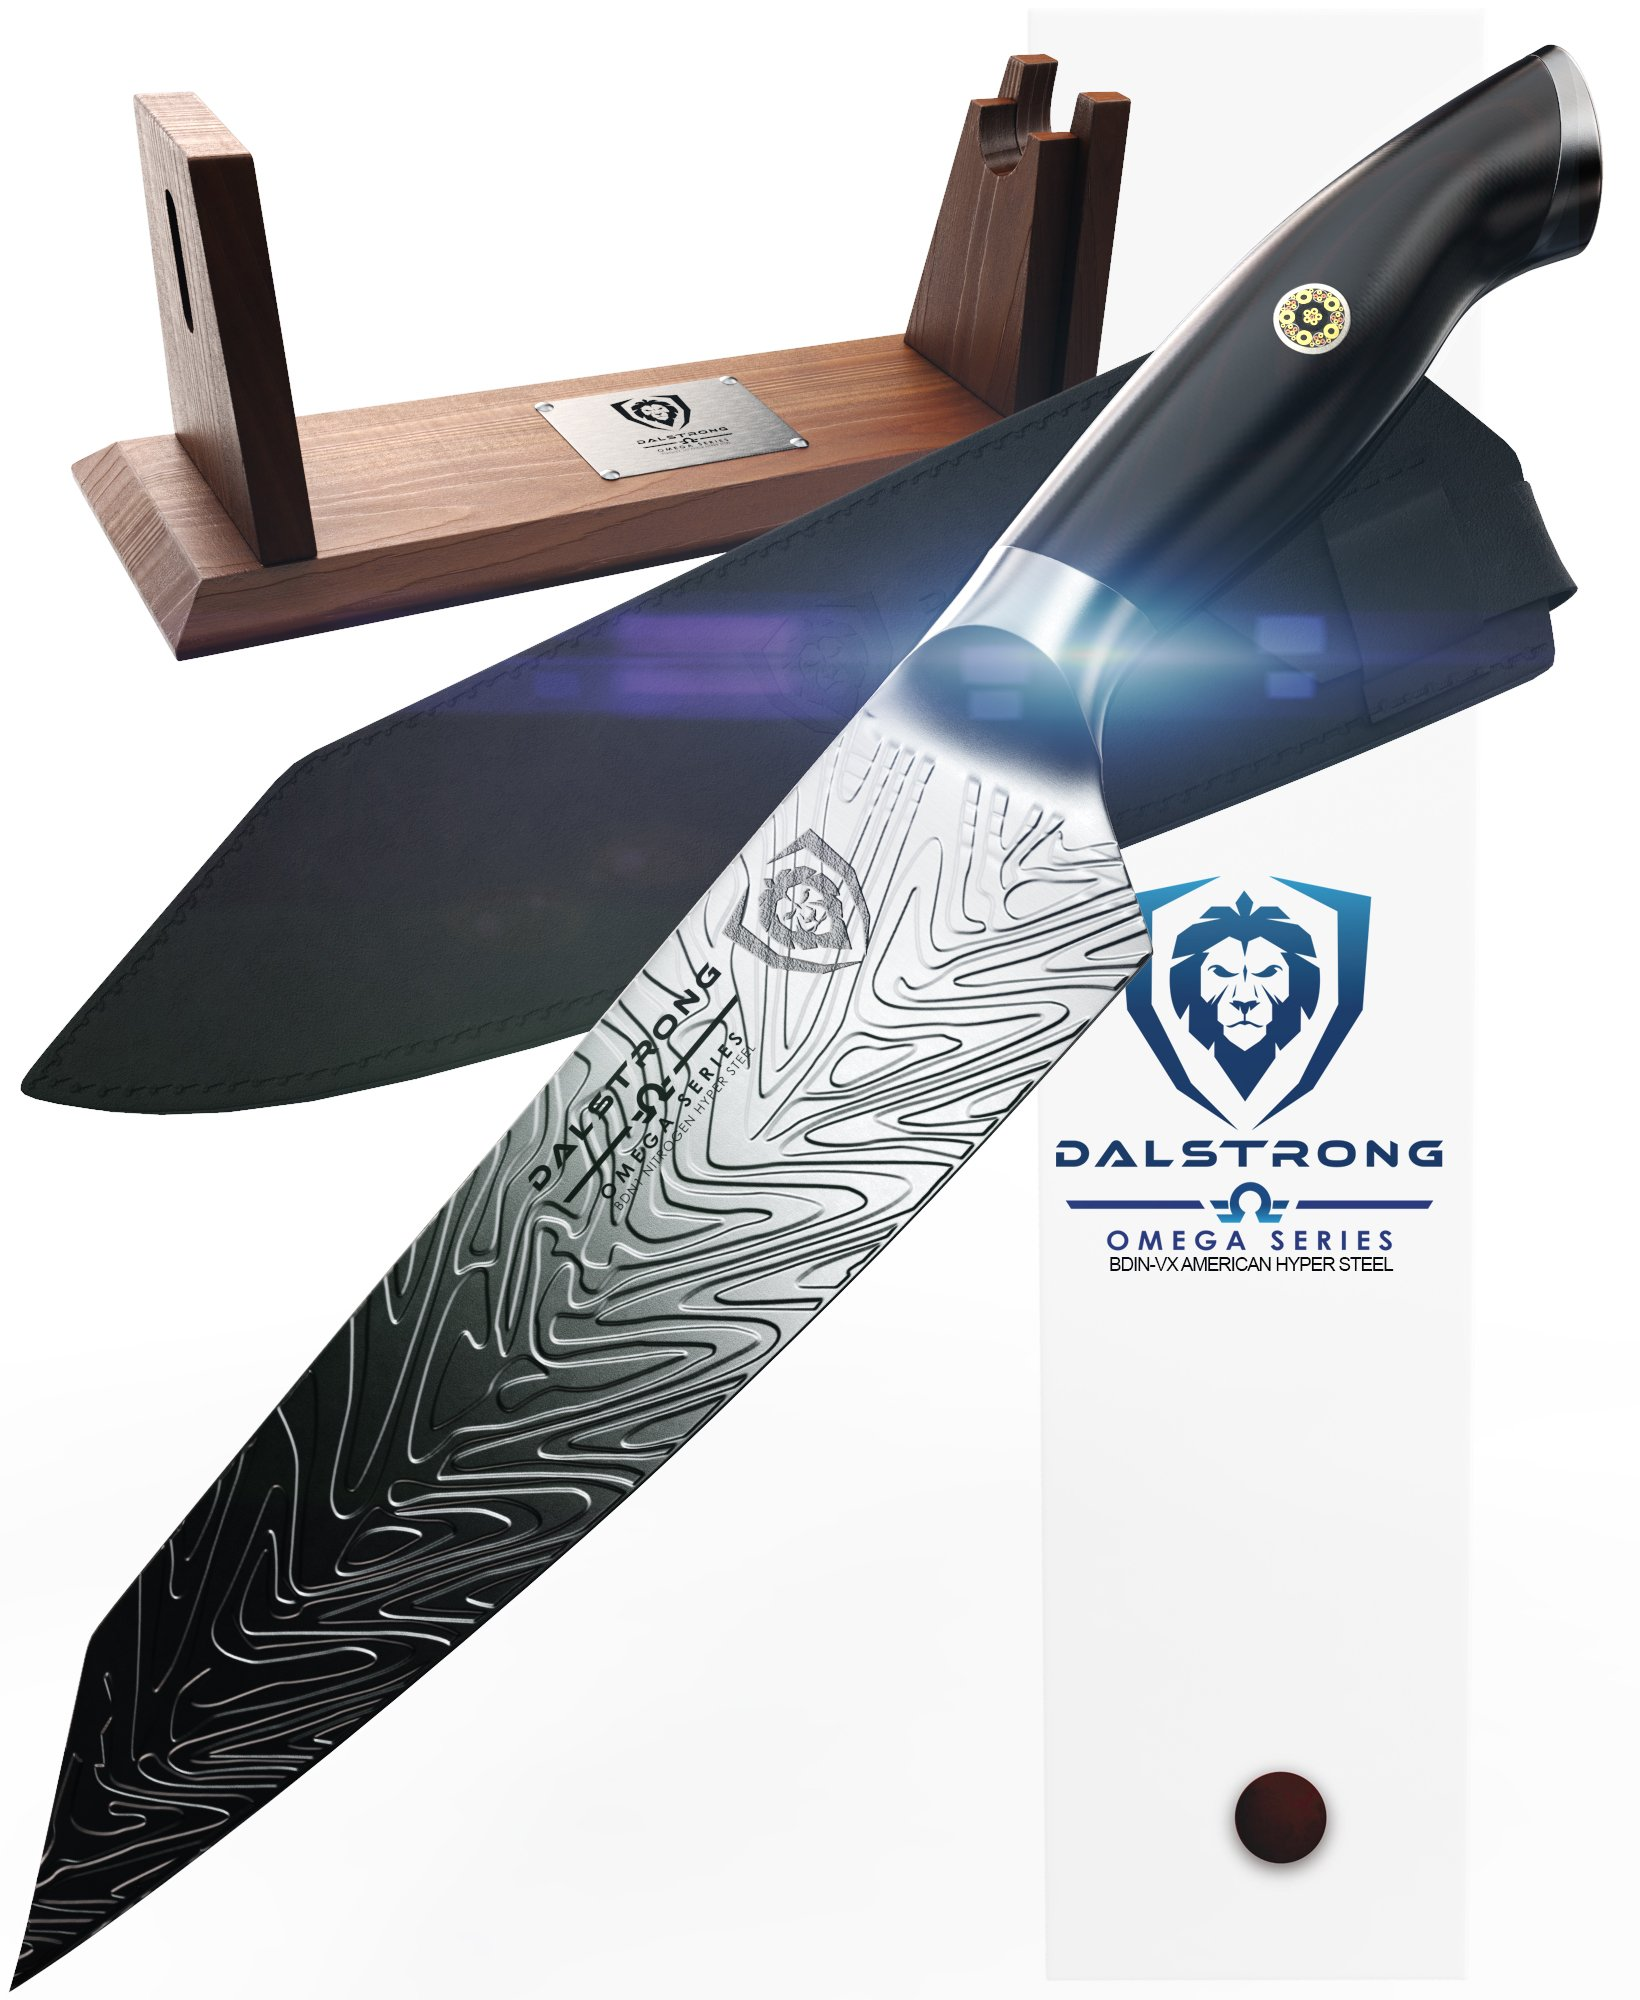 Dalstrong Inc. - Omega Series - BD1N-V - Hyper Steel - w/Sheath (8.5'' Kiritsuke-Chef Knife) by Dalstrong